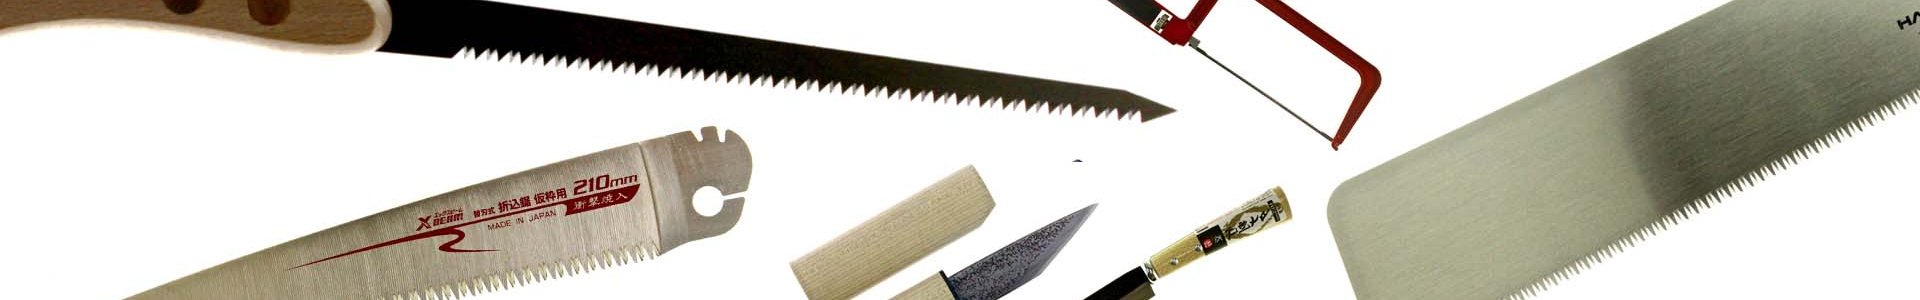 SAWS__BLADES___WOOD_CUTTING_IMPLEMENTS